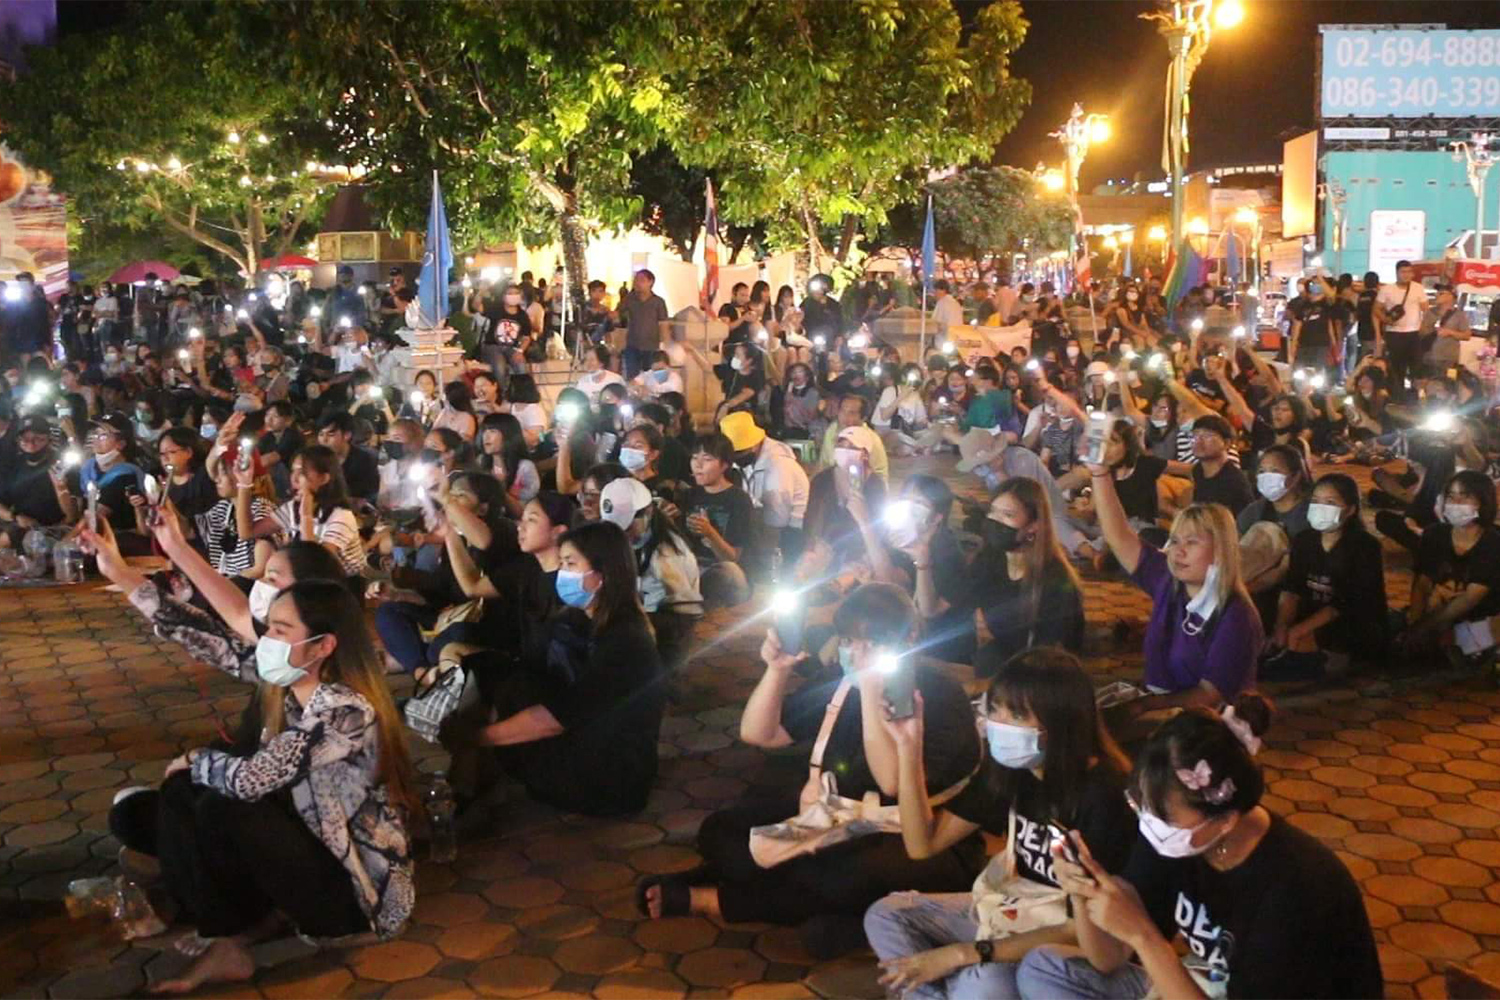 Students hold a rally against the goverment in Muang district of Khon Kaen on Saturday night. (Photo by Chakrapan Natanri)